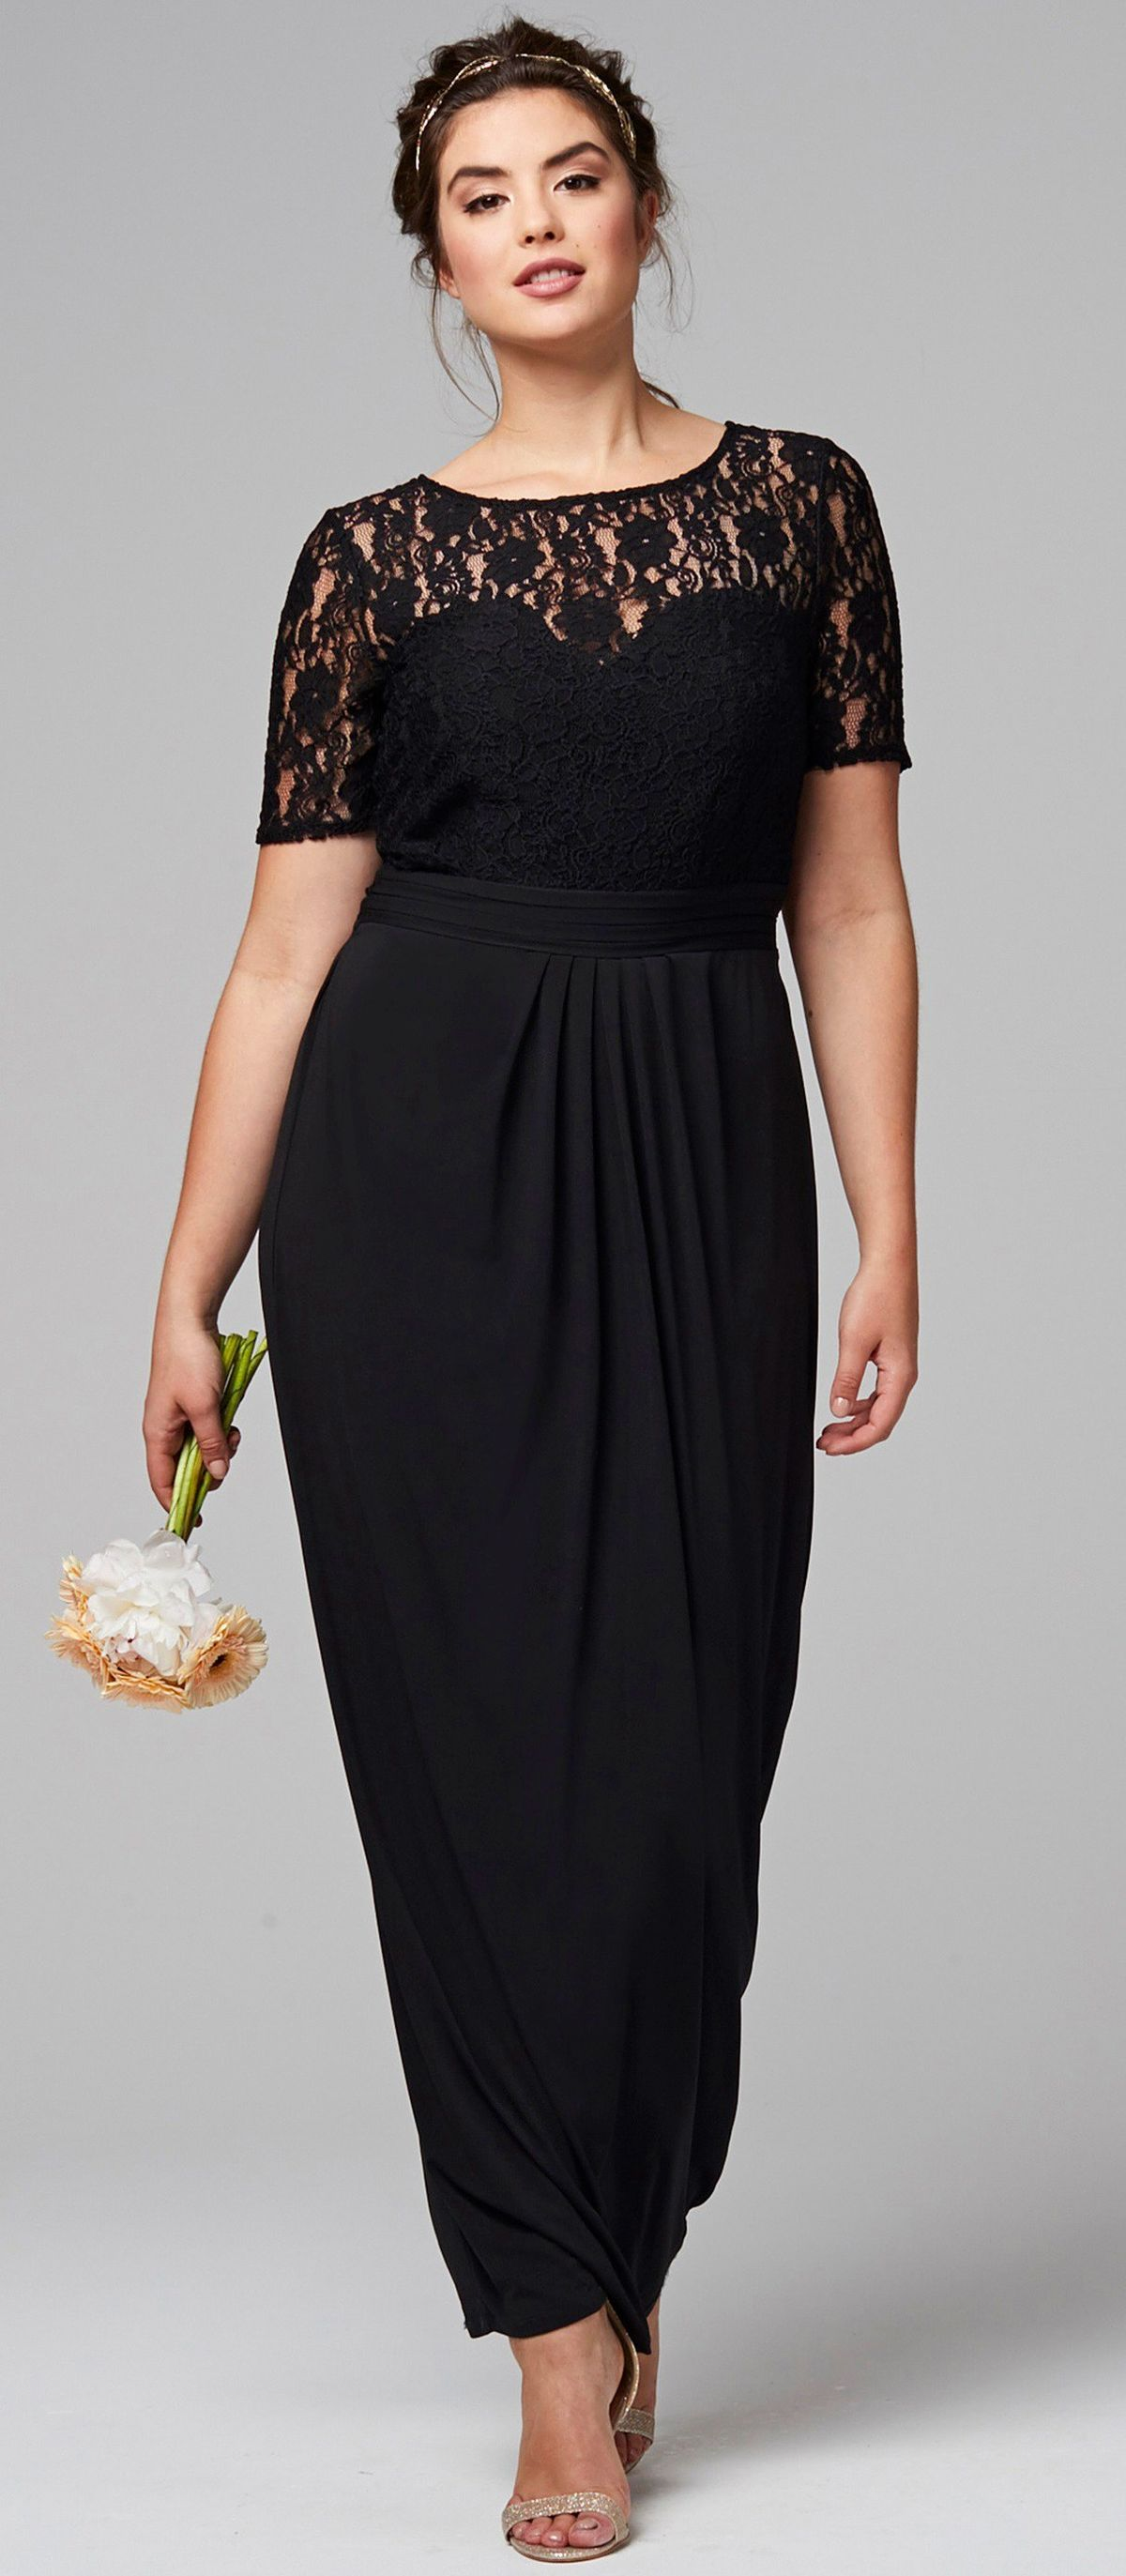 20 Plus Size Wedding Guest Dresses with Sleeves   Plus Size ...